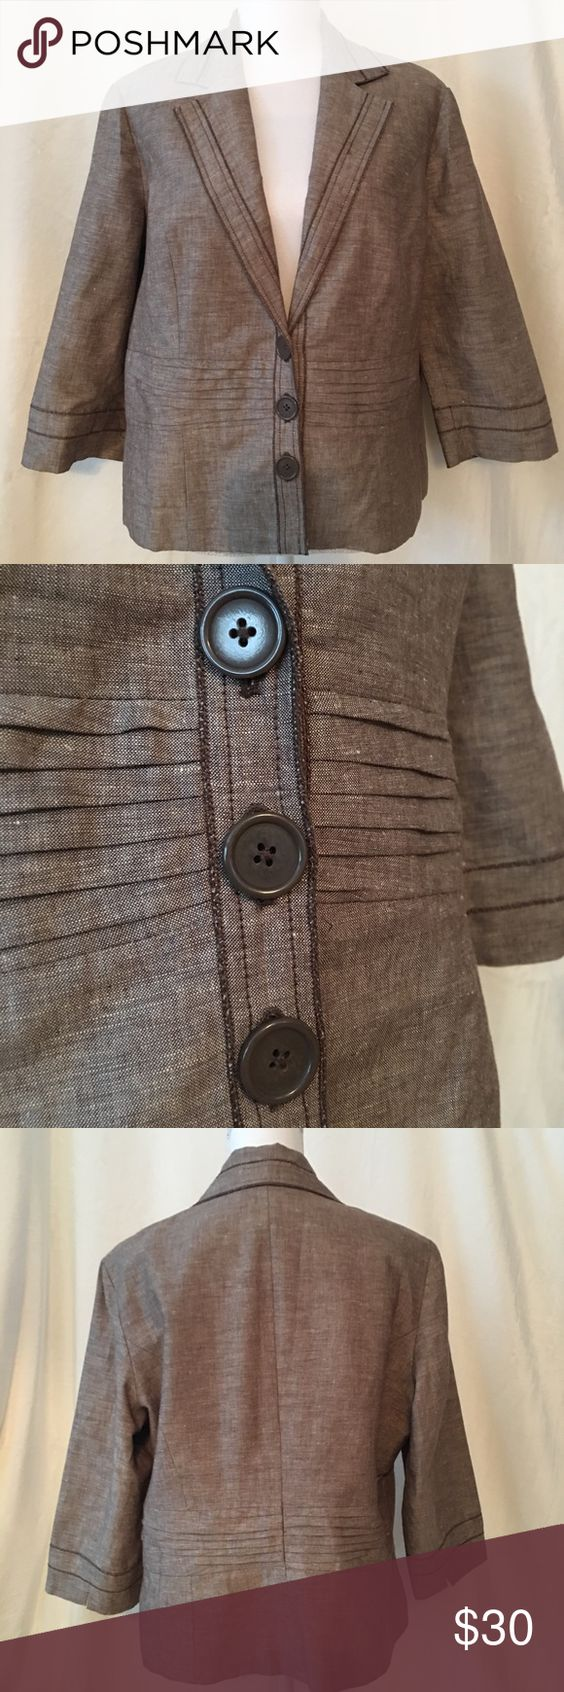 Coldwater Creek Linen Blazer Brown 3/4 sleeve linen and cotton short blazer. Has 3 buttons and great detail. Can be dressed up or worn with jeans. In great condition. Coldwater Creek Jackets & Coats Blazers